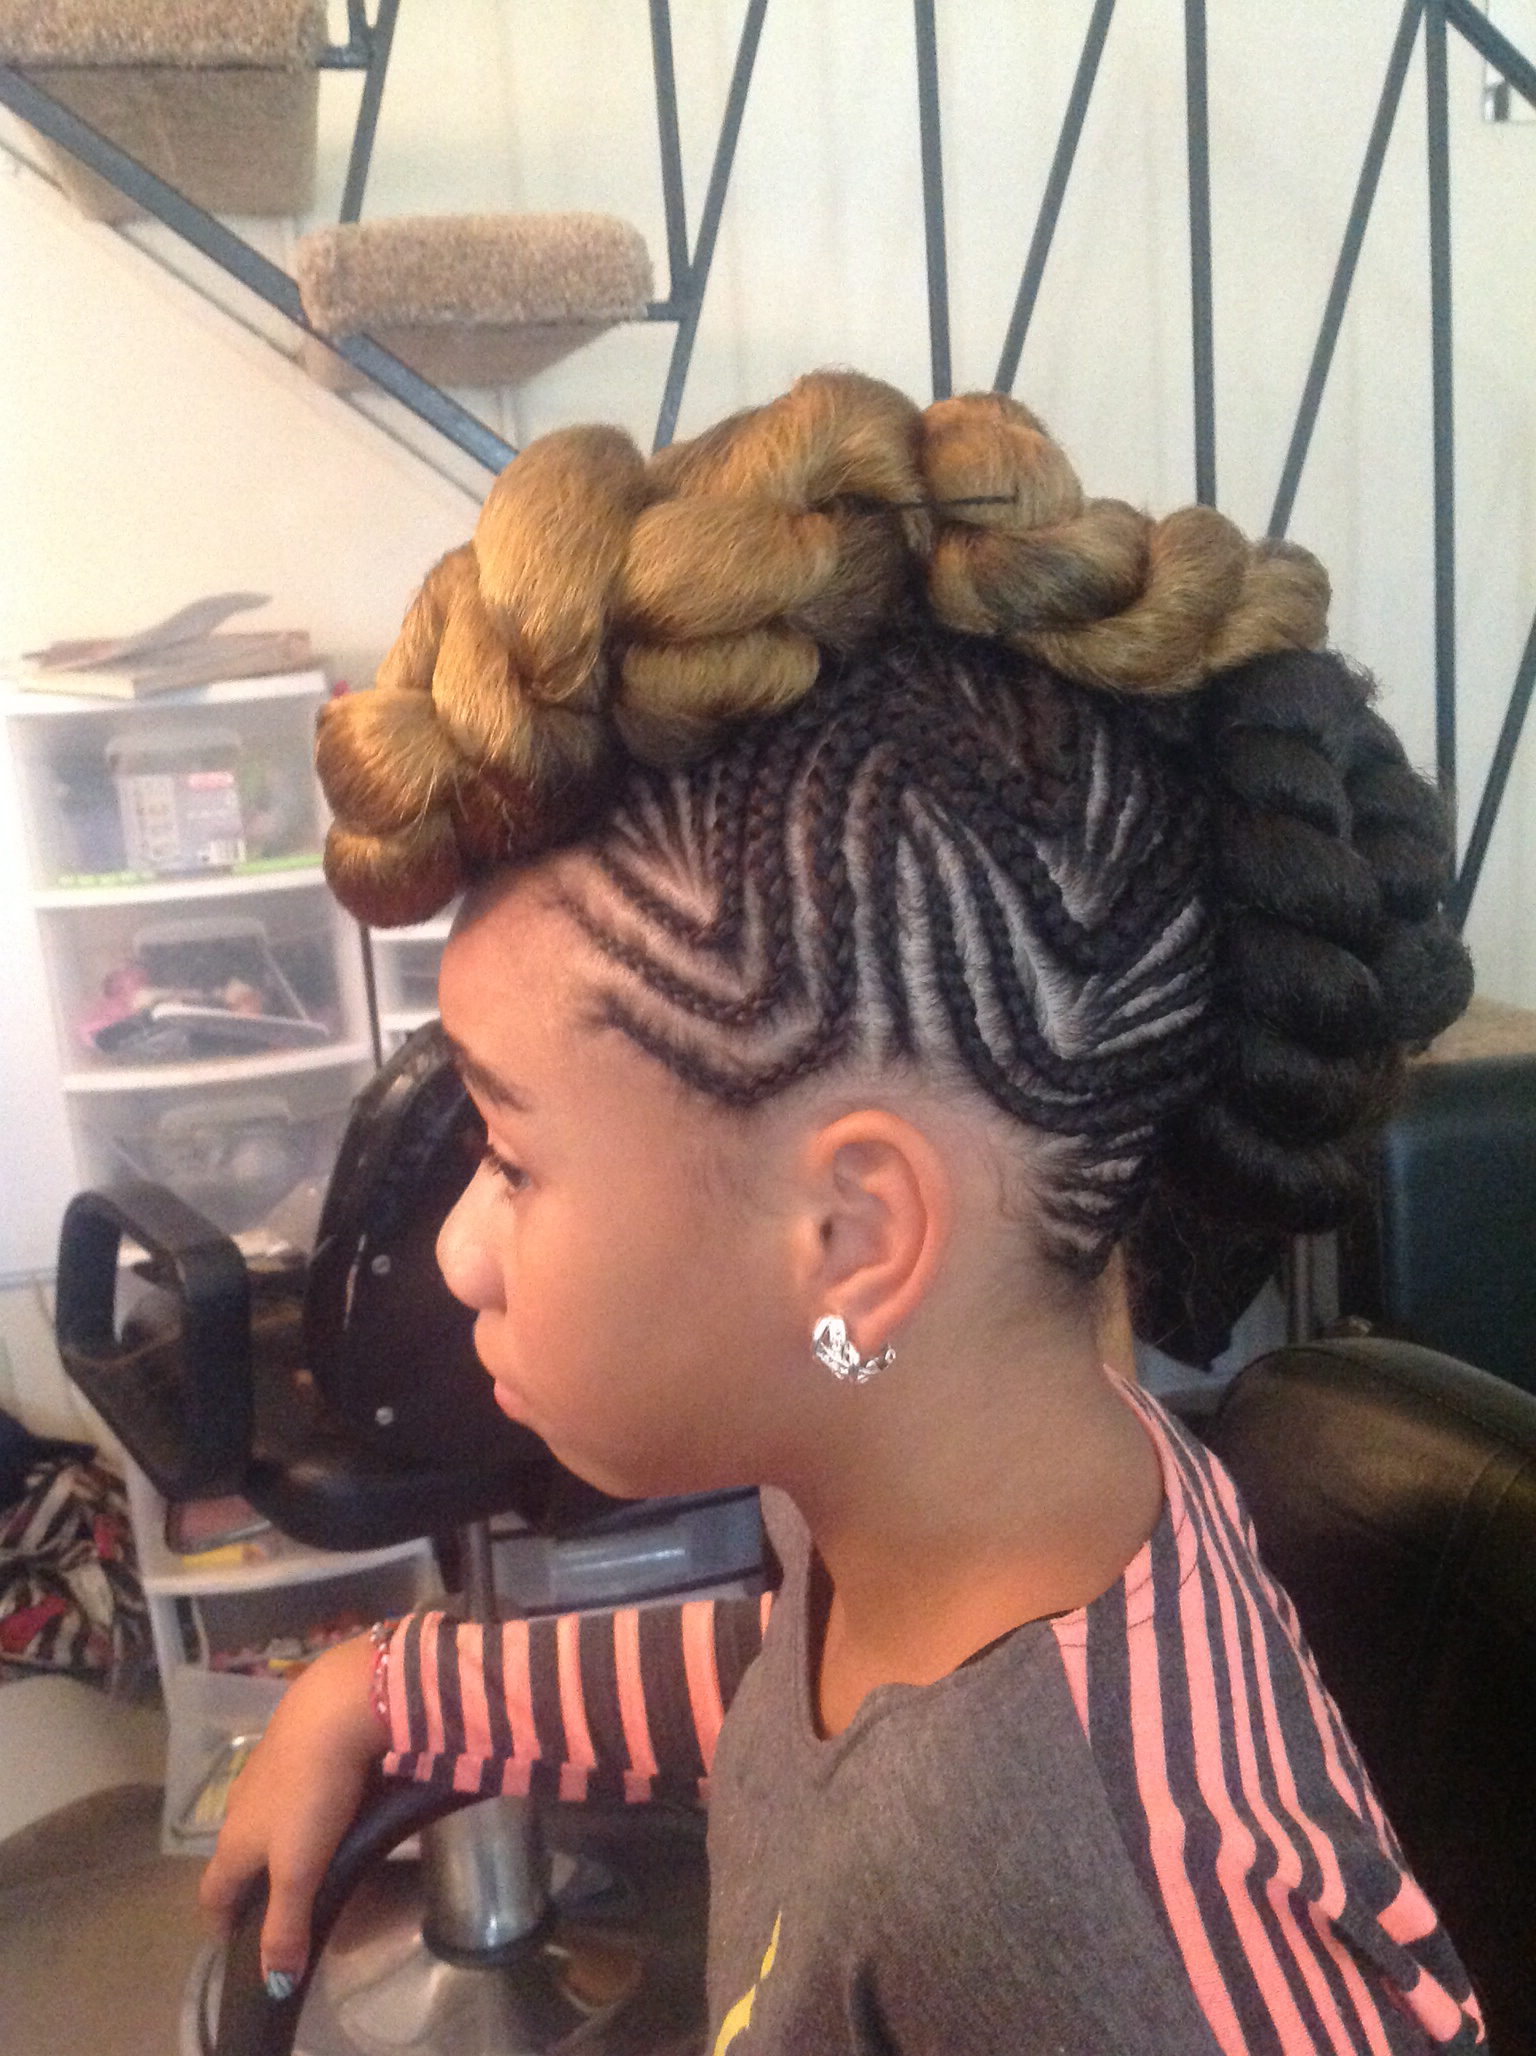 15 Foremost Braided Mohawk Hairstyles – Mohawk With Braids Within Trendy Mohawk Under Braid Hairstyles (View 9 of 20)